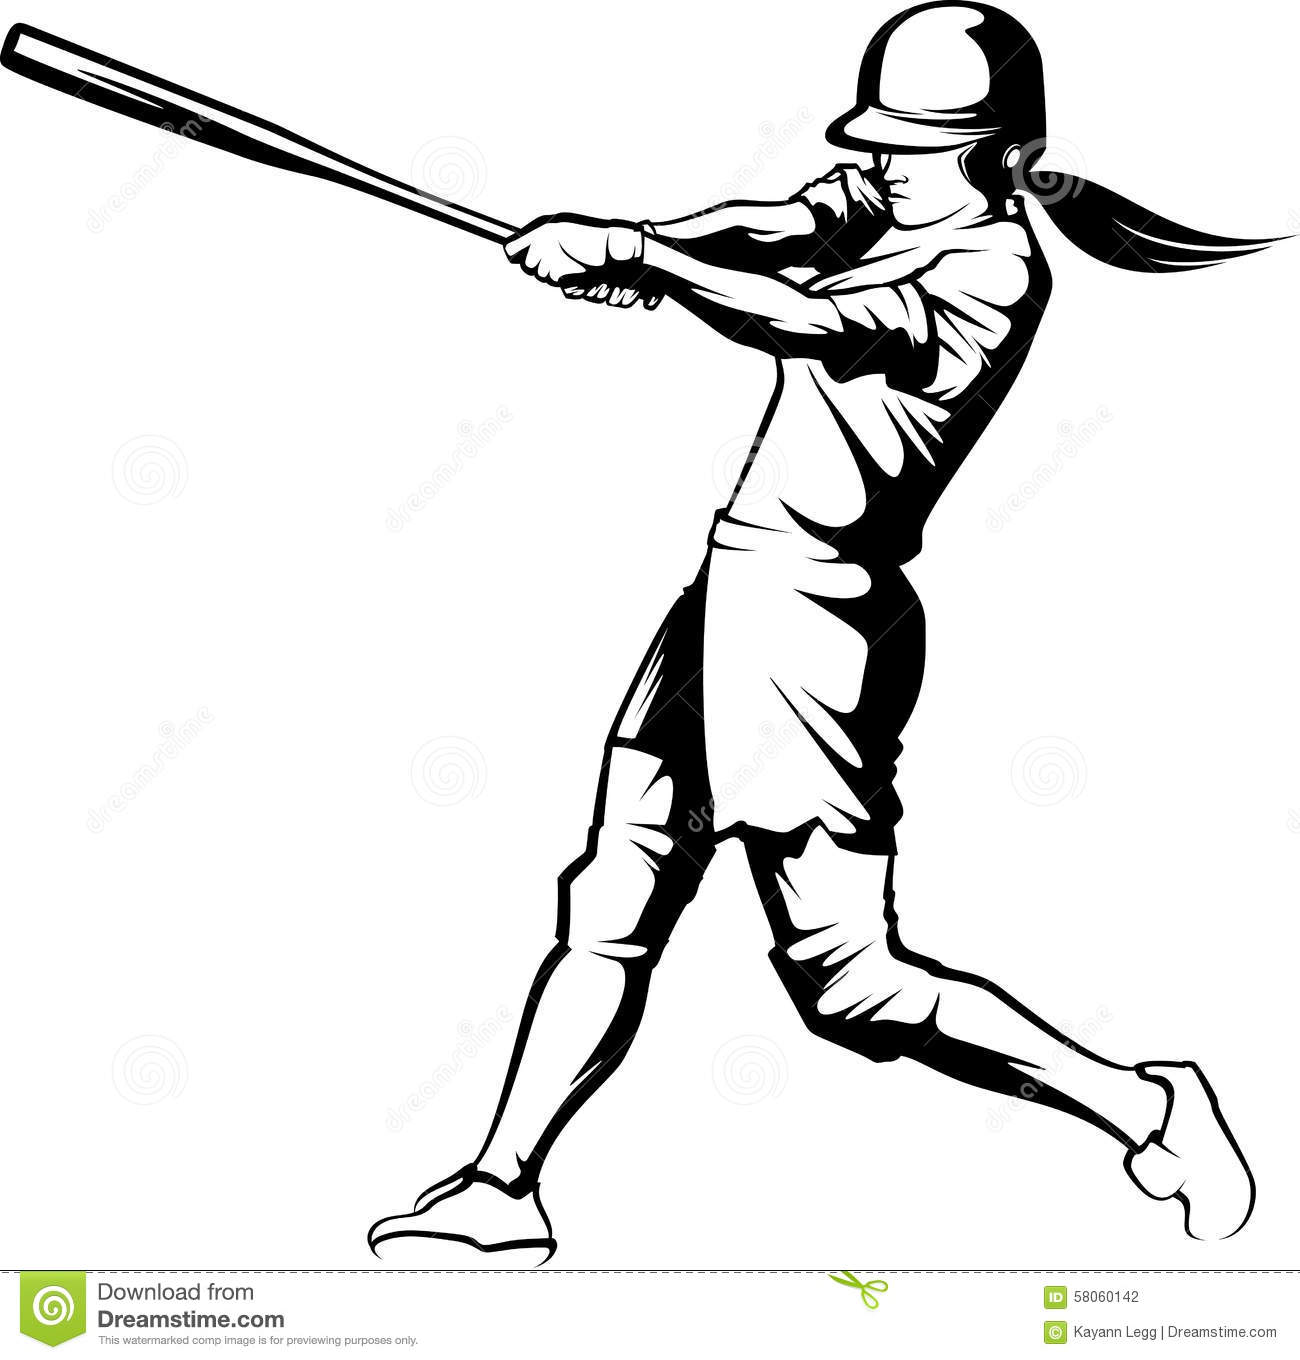 Softball Batter Clipart.